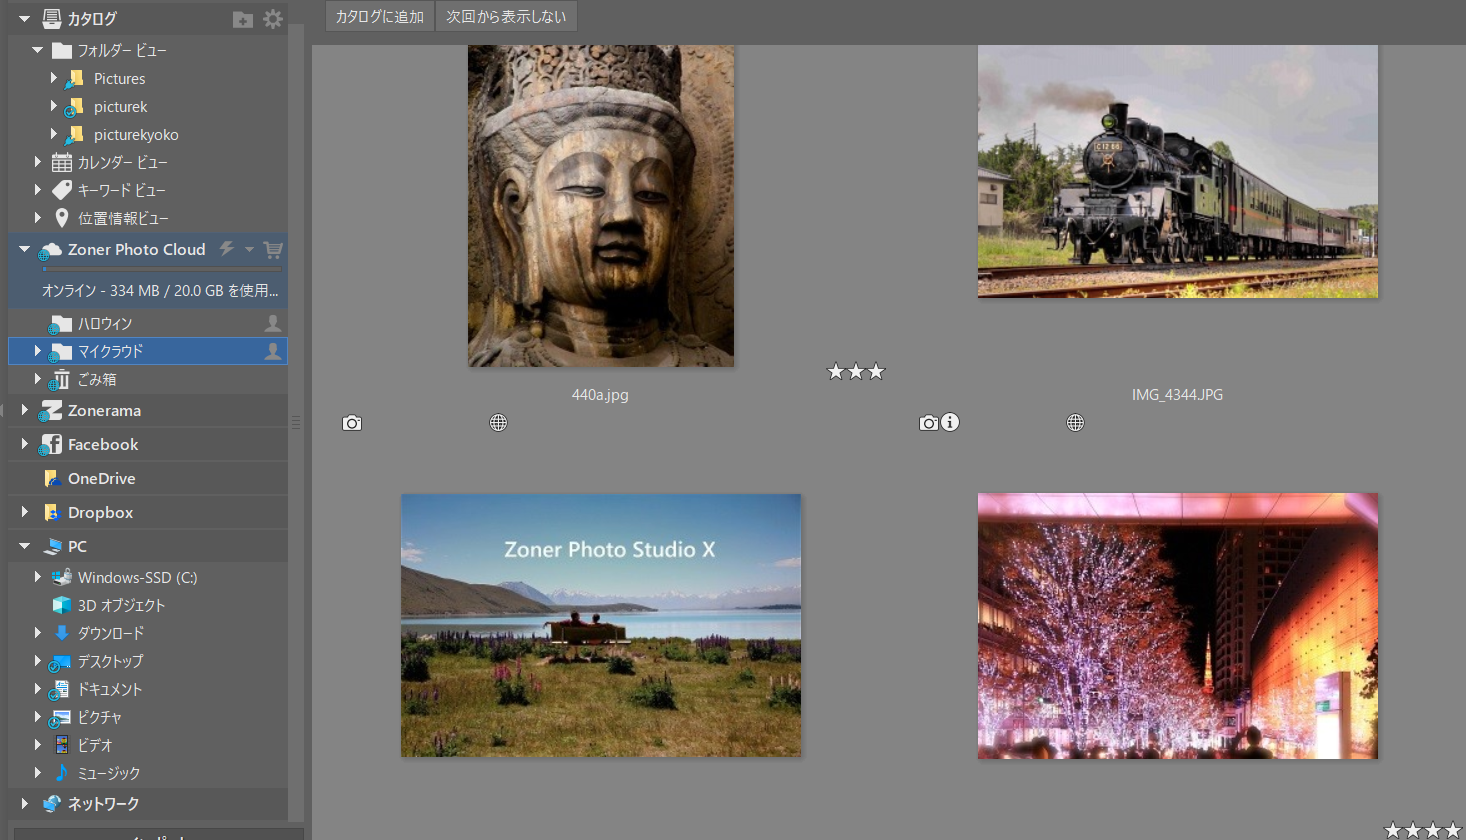 Zoner Photo Studio X Introduces Zoner Photo Cloud: Personal Online Storage That's Made for Photographers